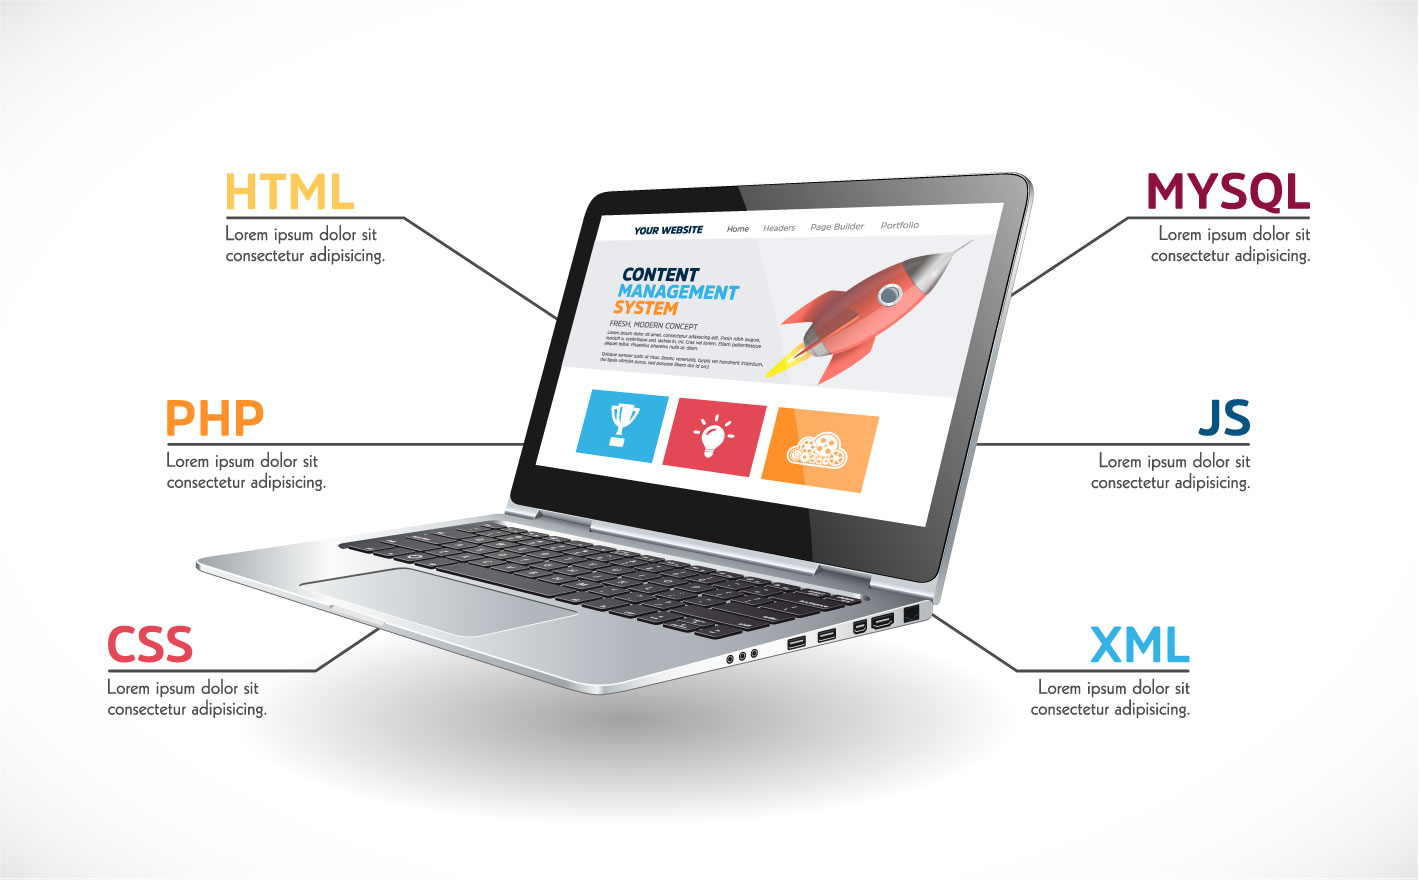 Different Technology used for Content Management